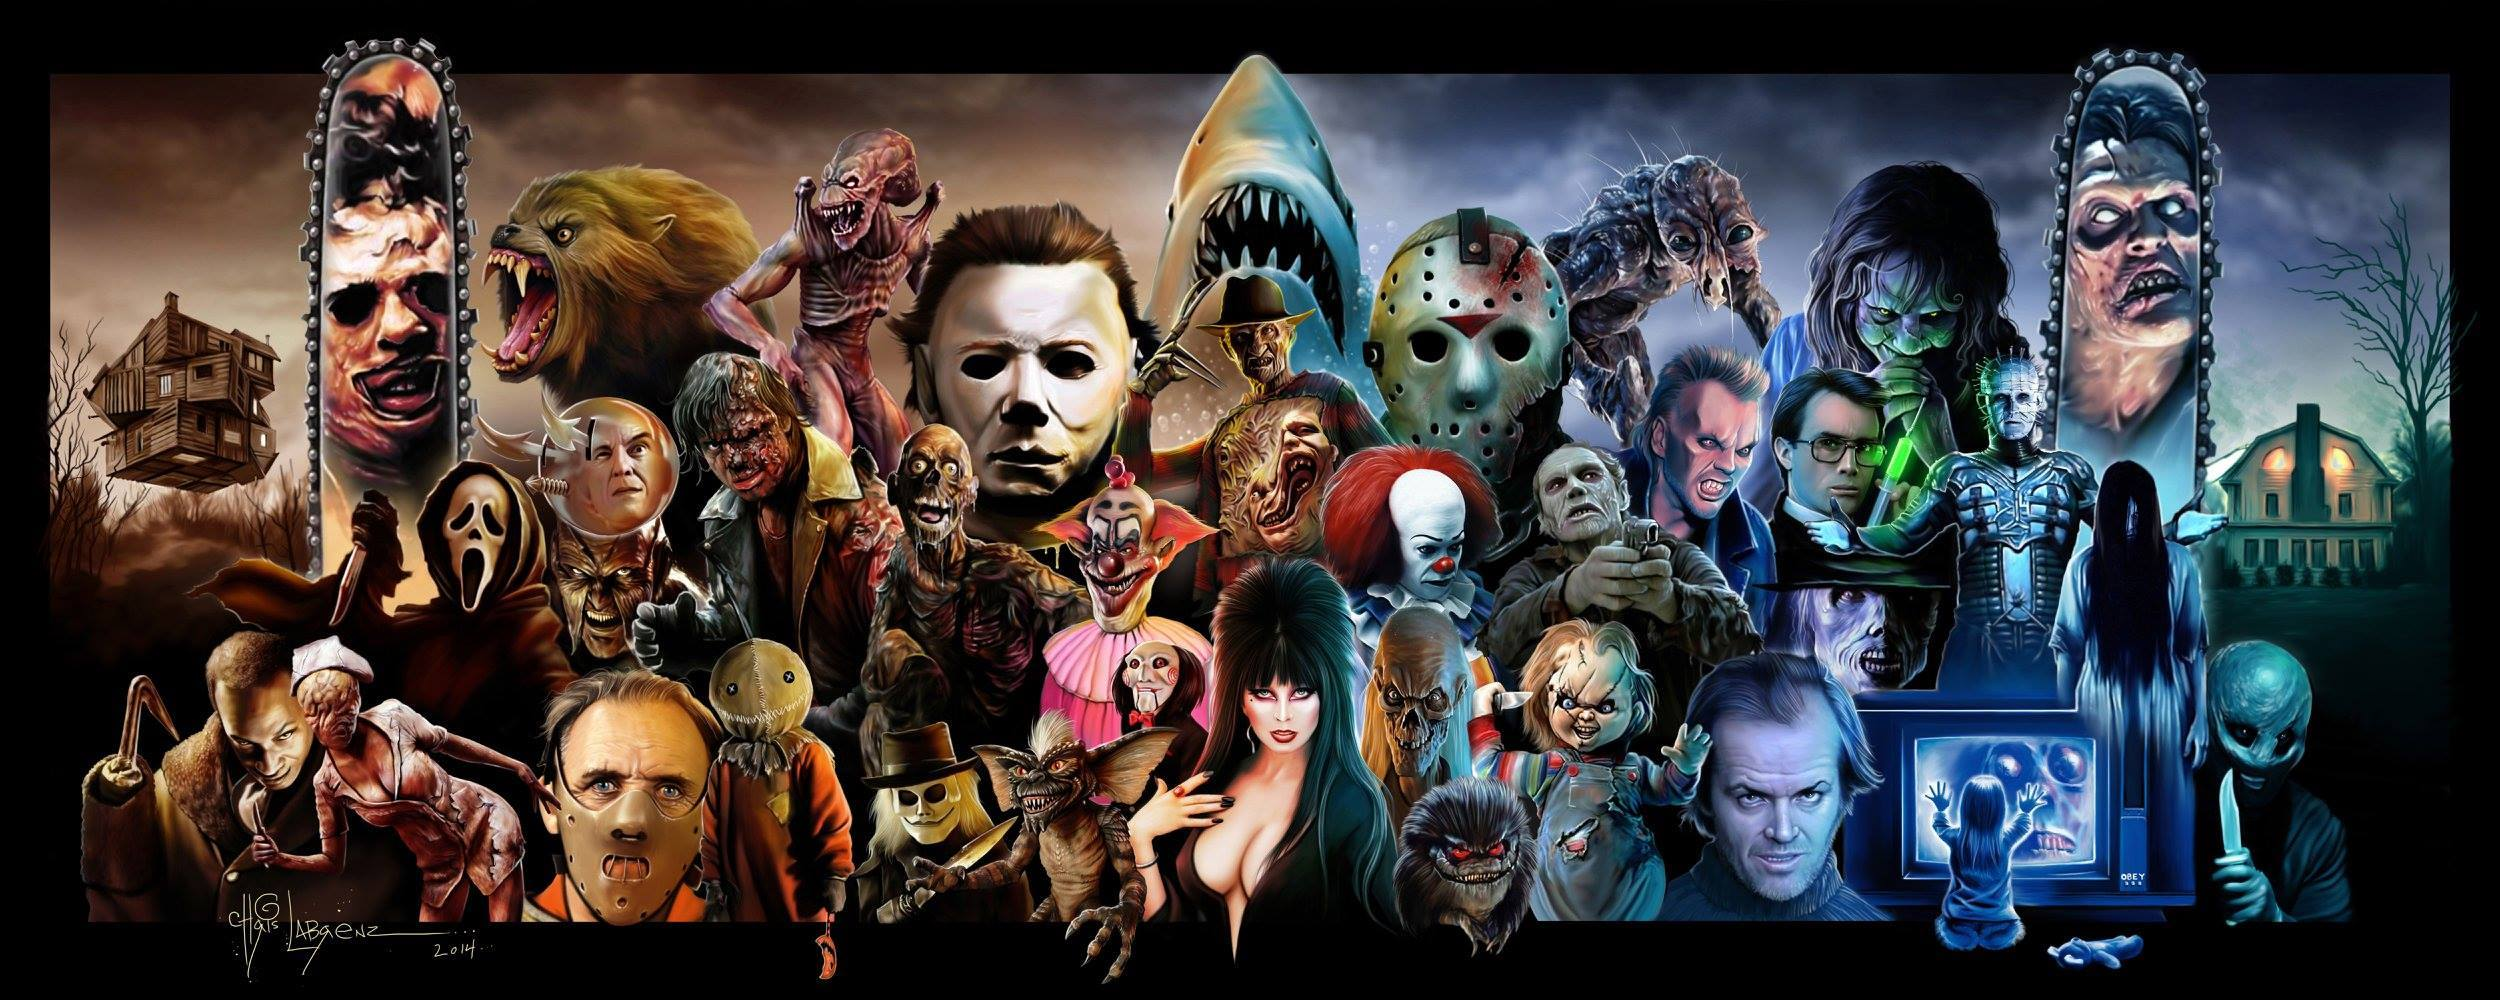 Horror Movies Wallpapers - Wallpaper Cave